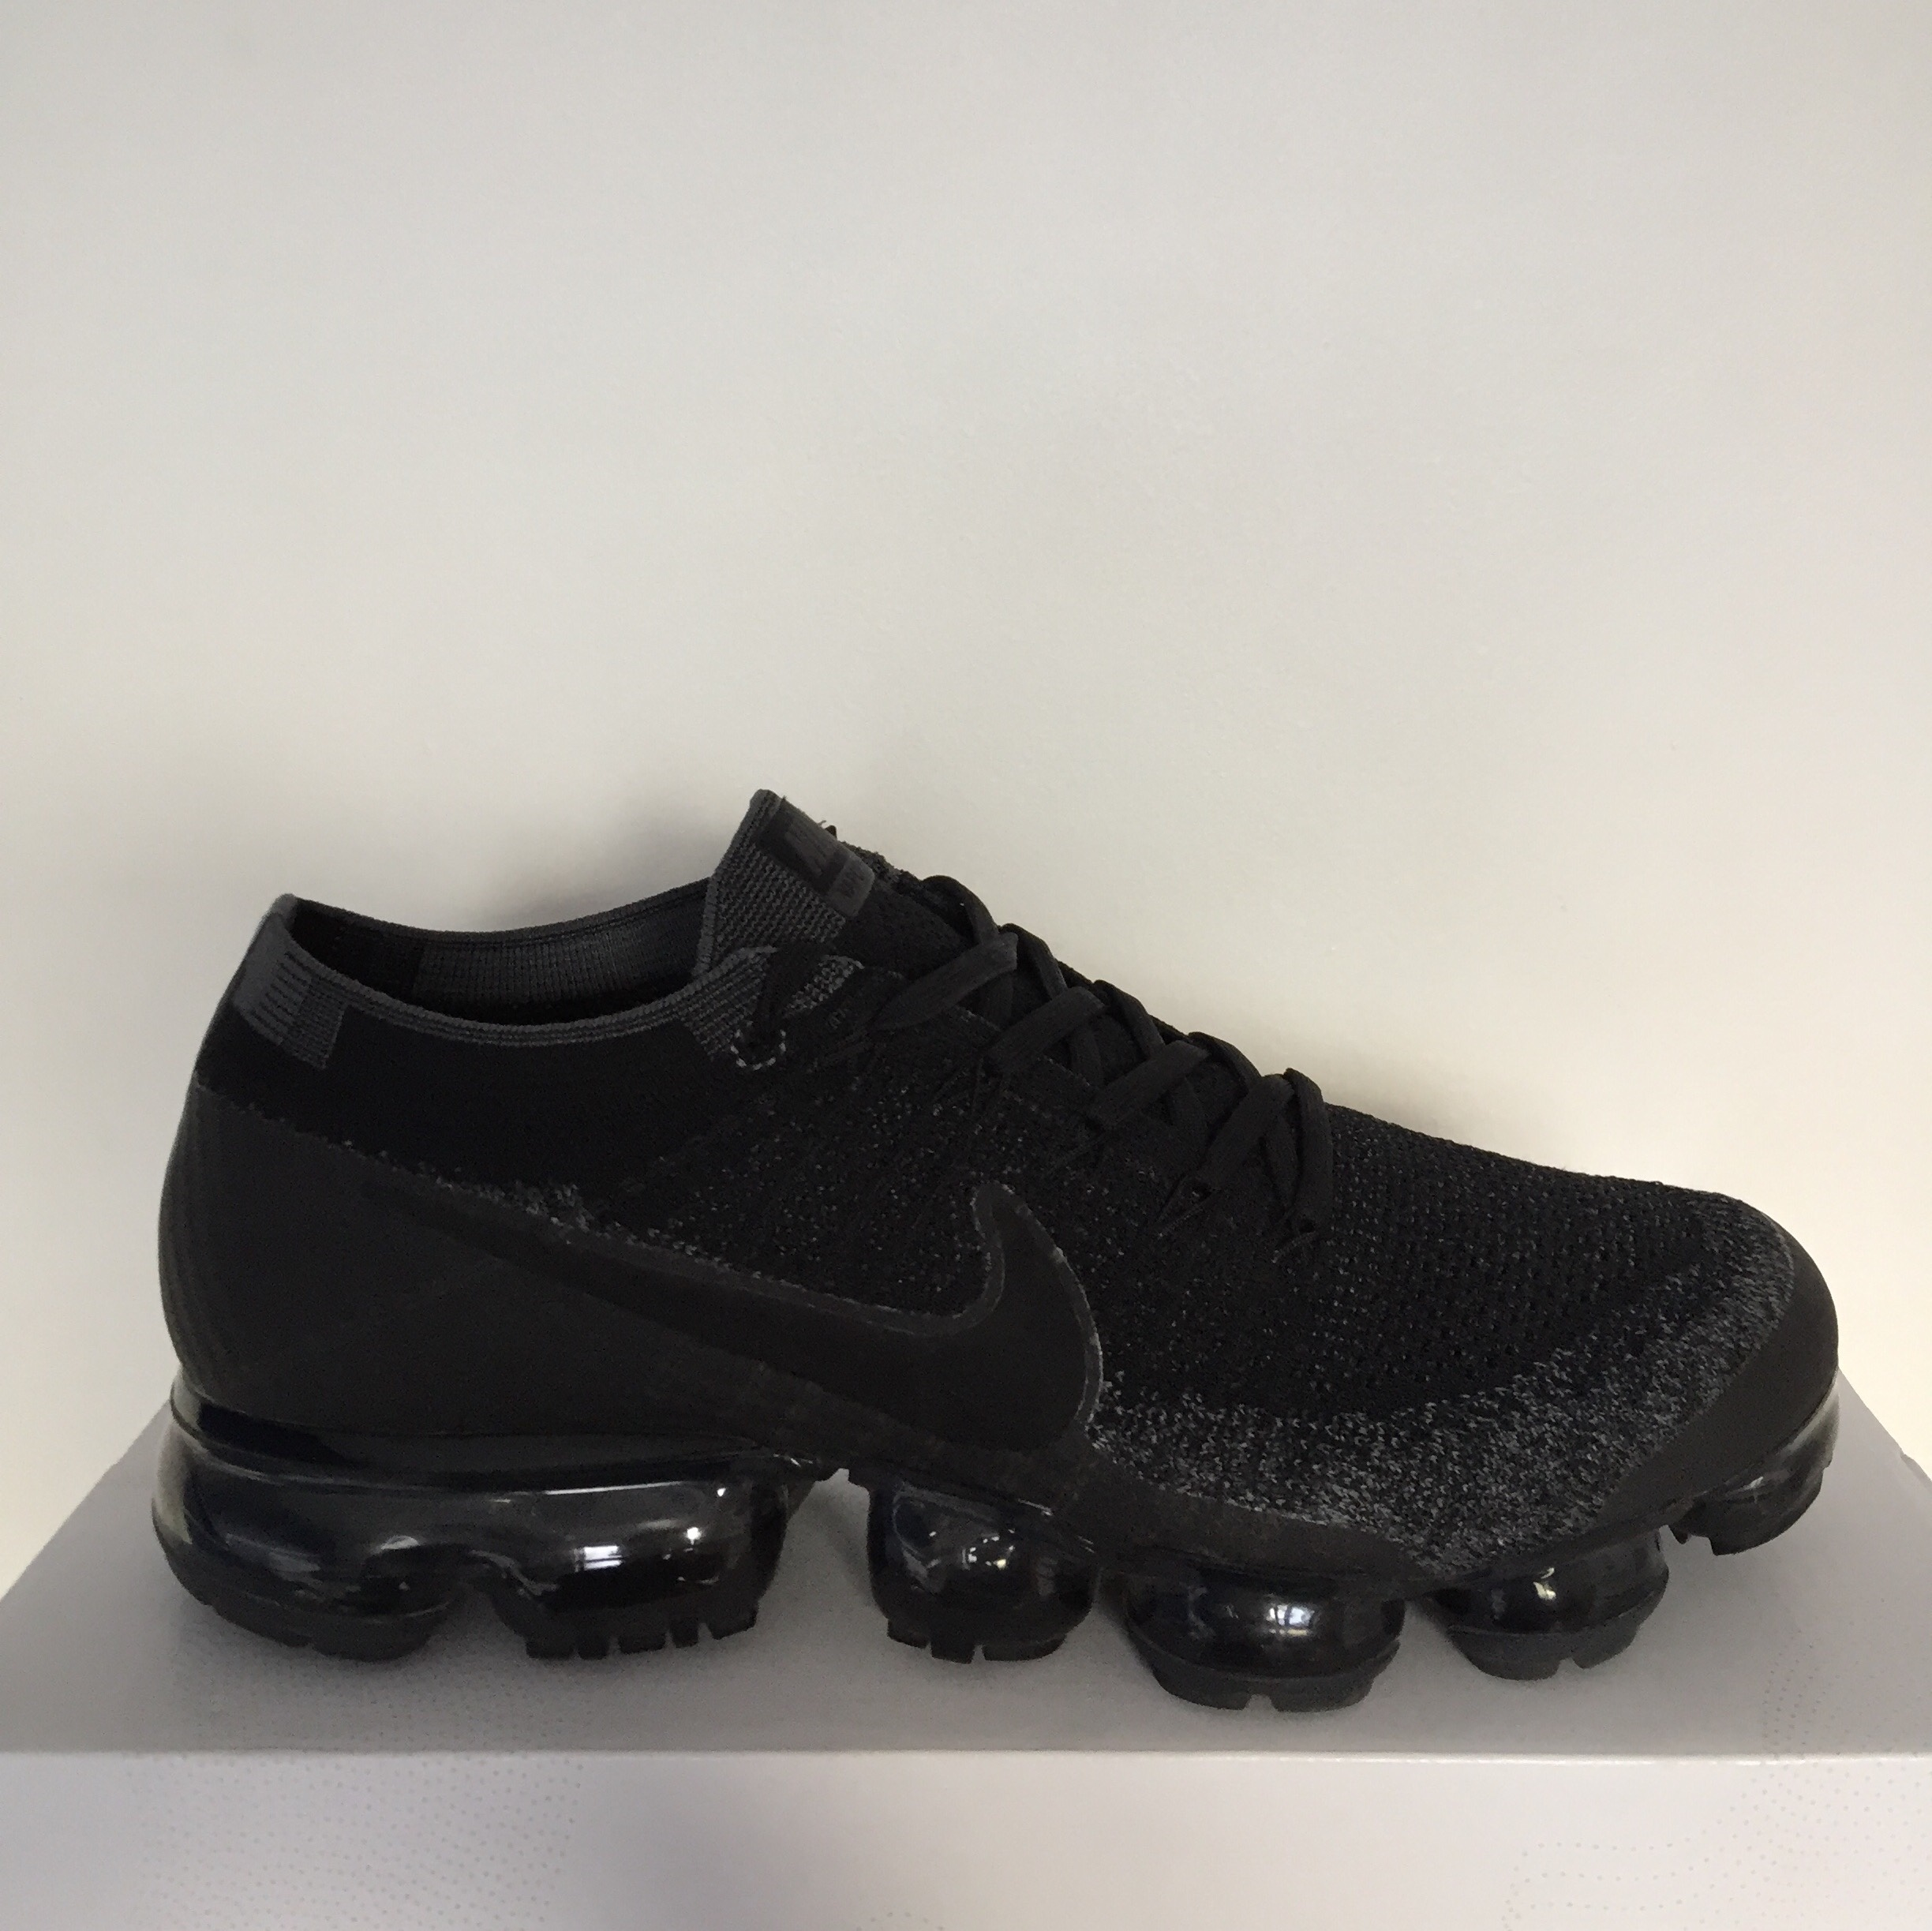 online store d3b90 40561 ◾️ Nike Flyknit Air Vapormax Triple Black ◾️ From the ...